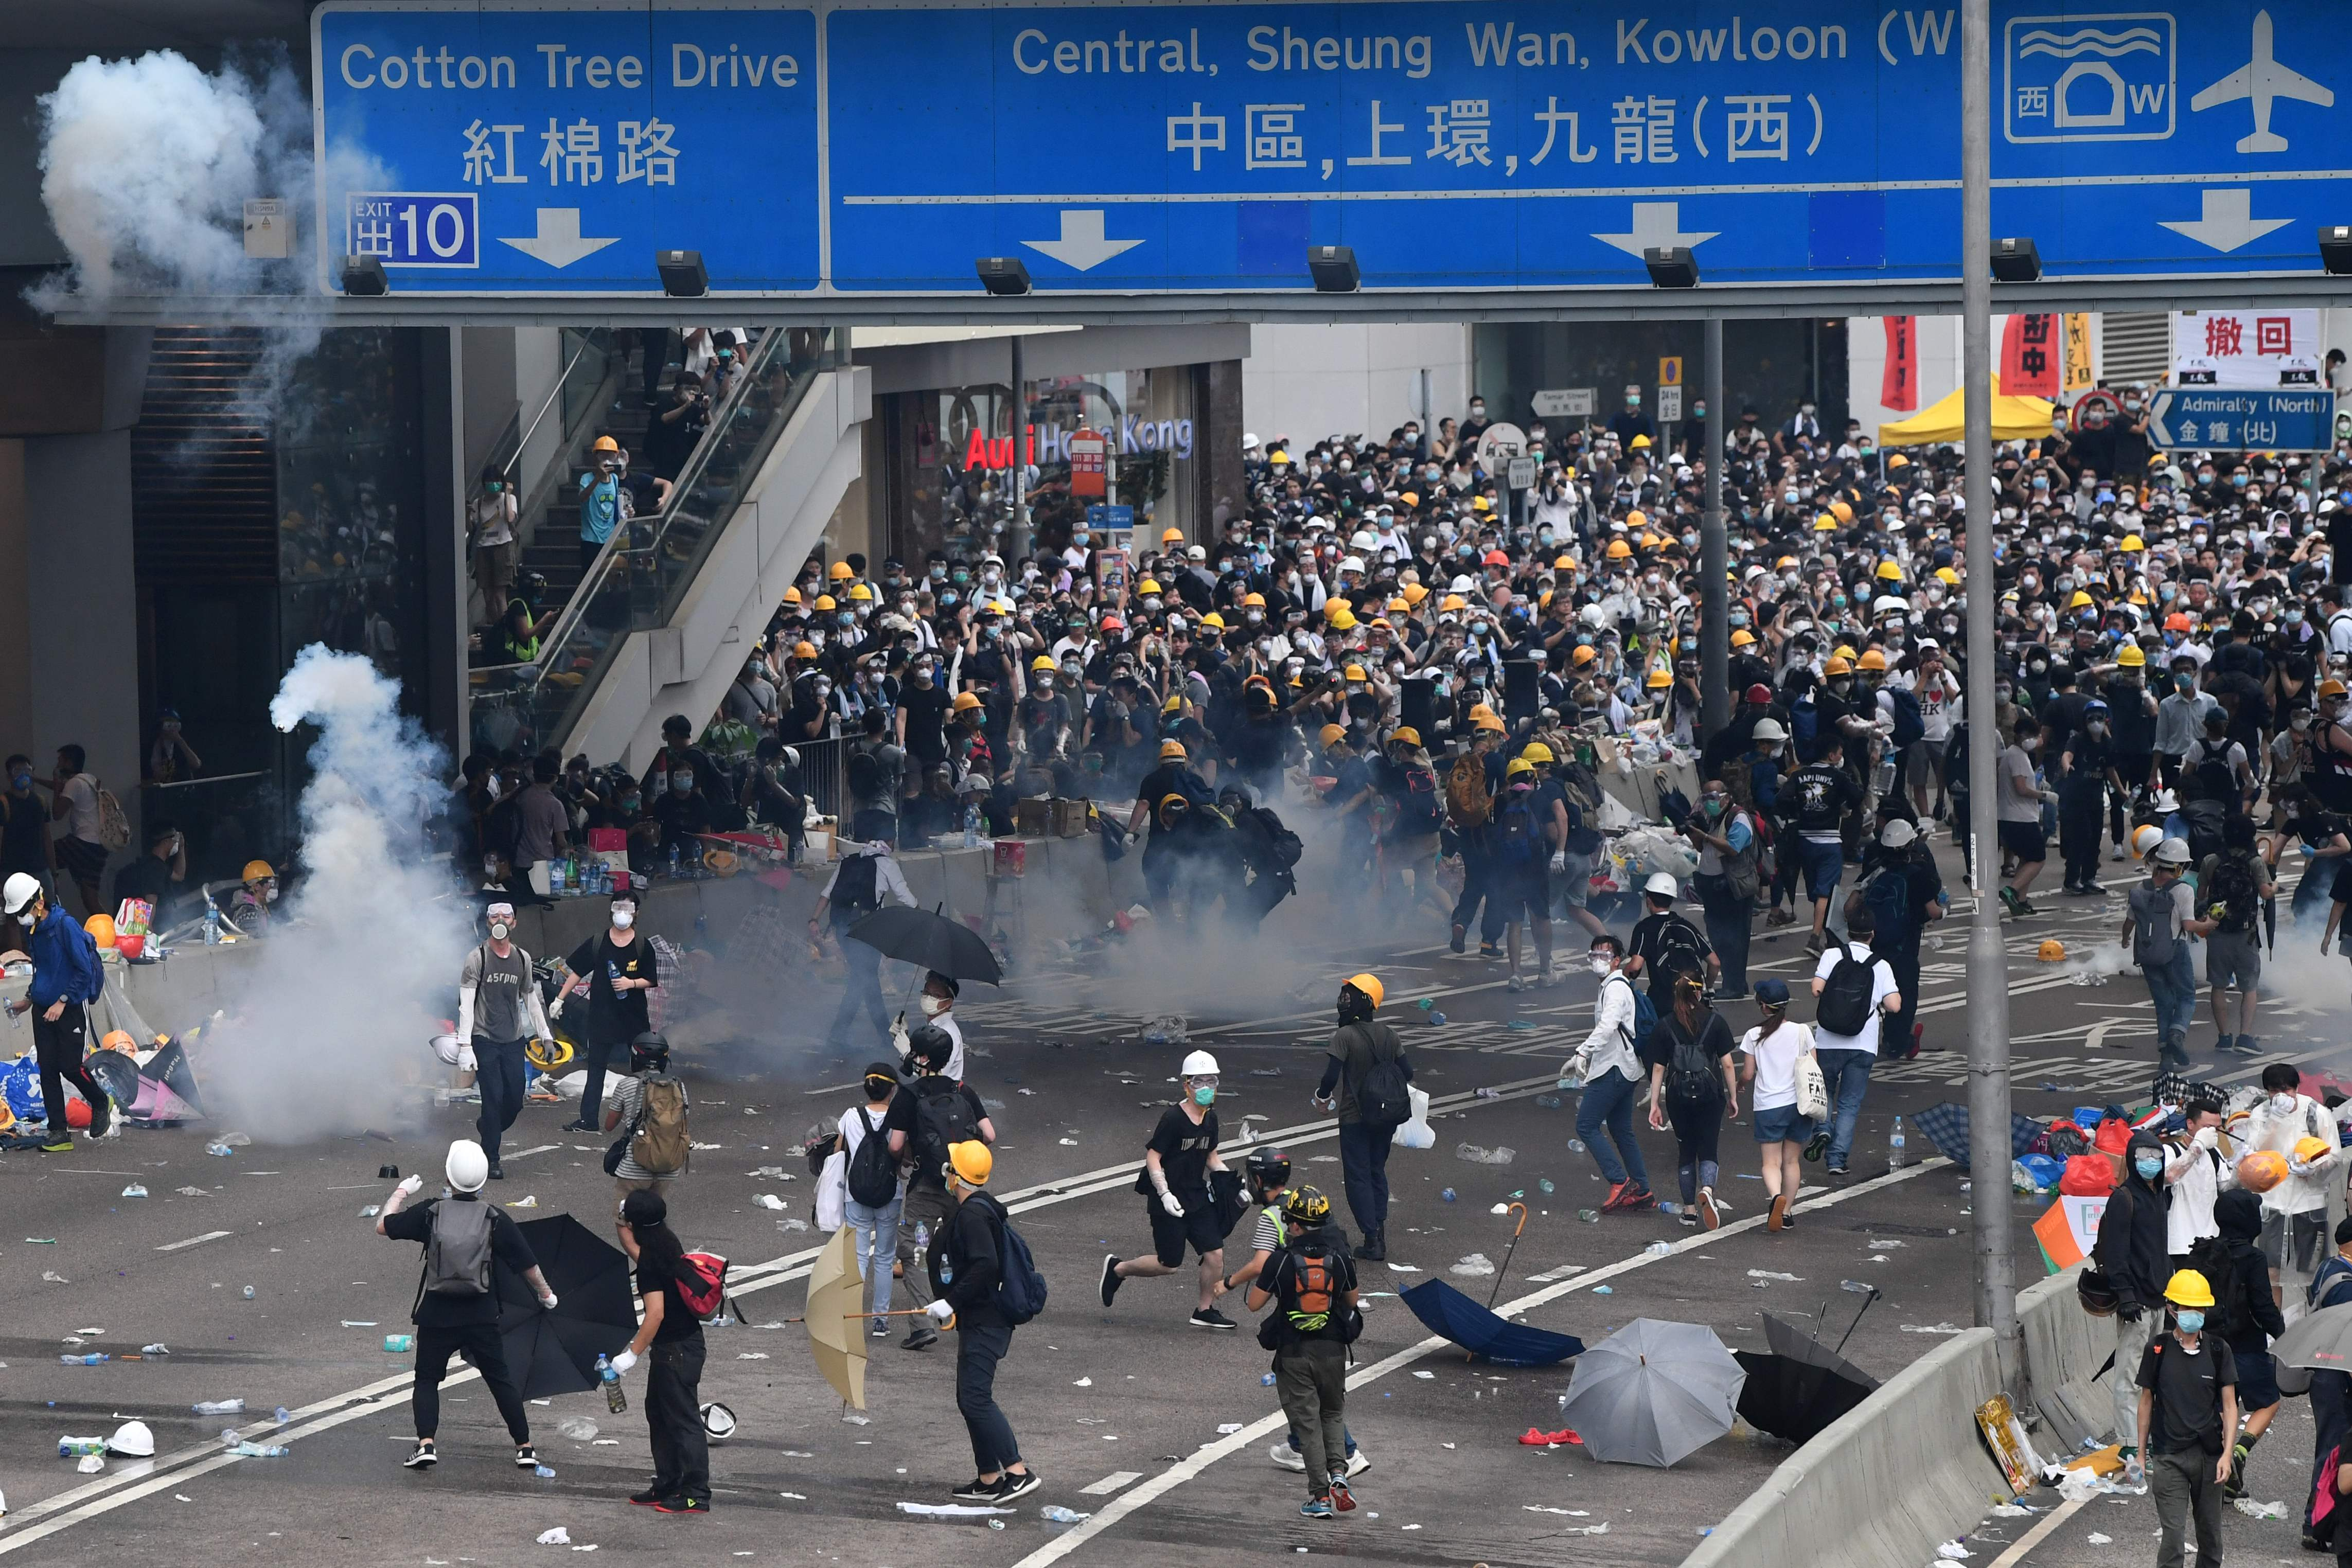 Pitched battles hit the streets as tear gas and rubber bullets flew through the air